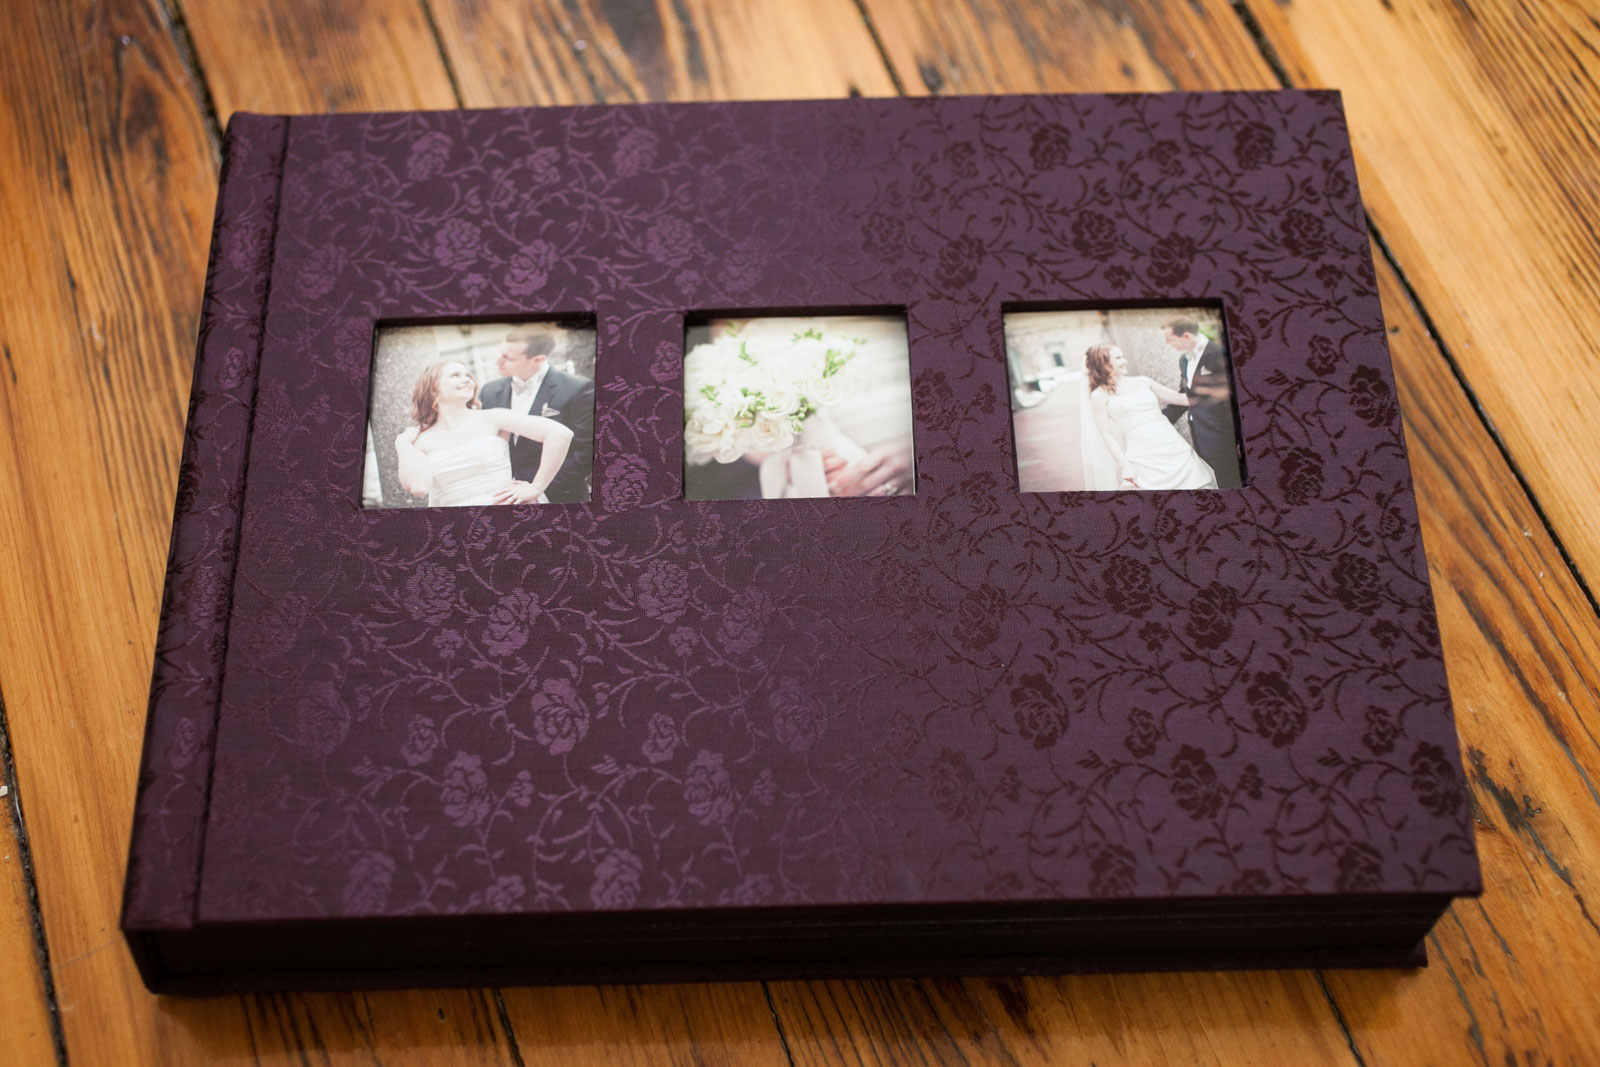 Fullsize Of Personalized Photo Albums